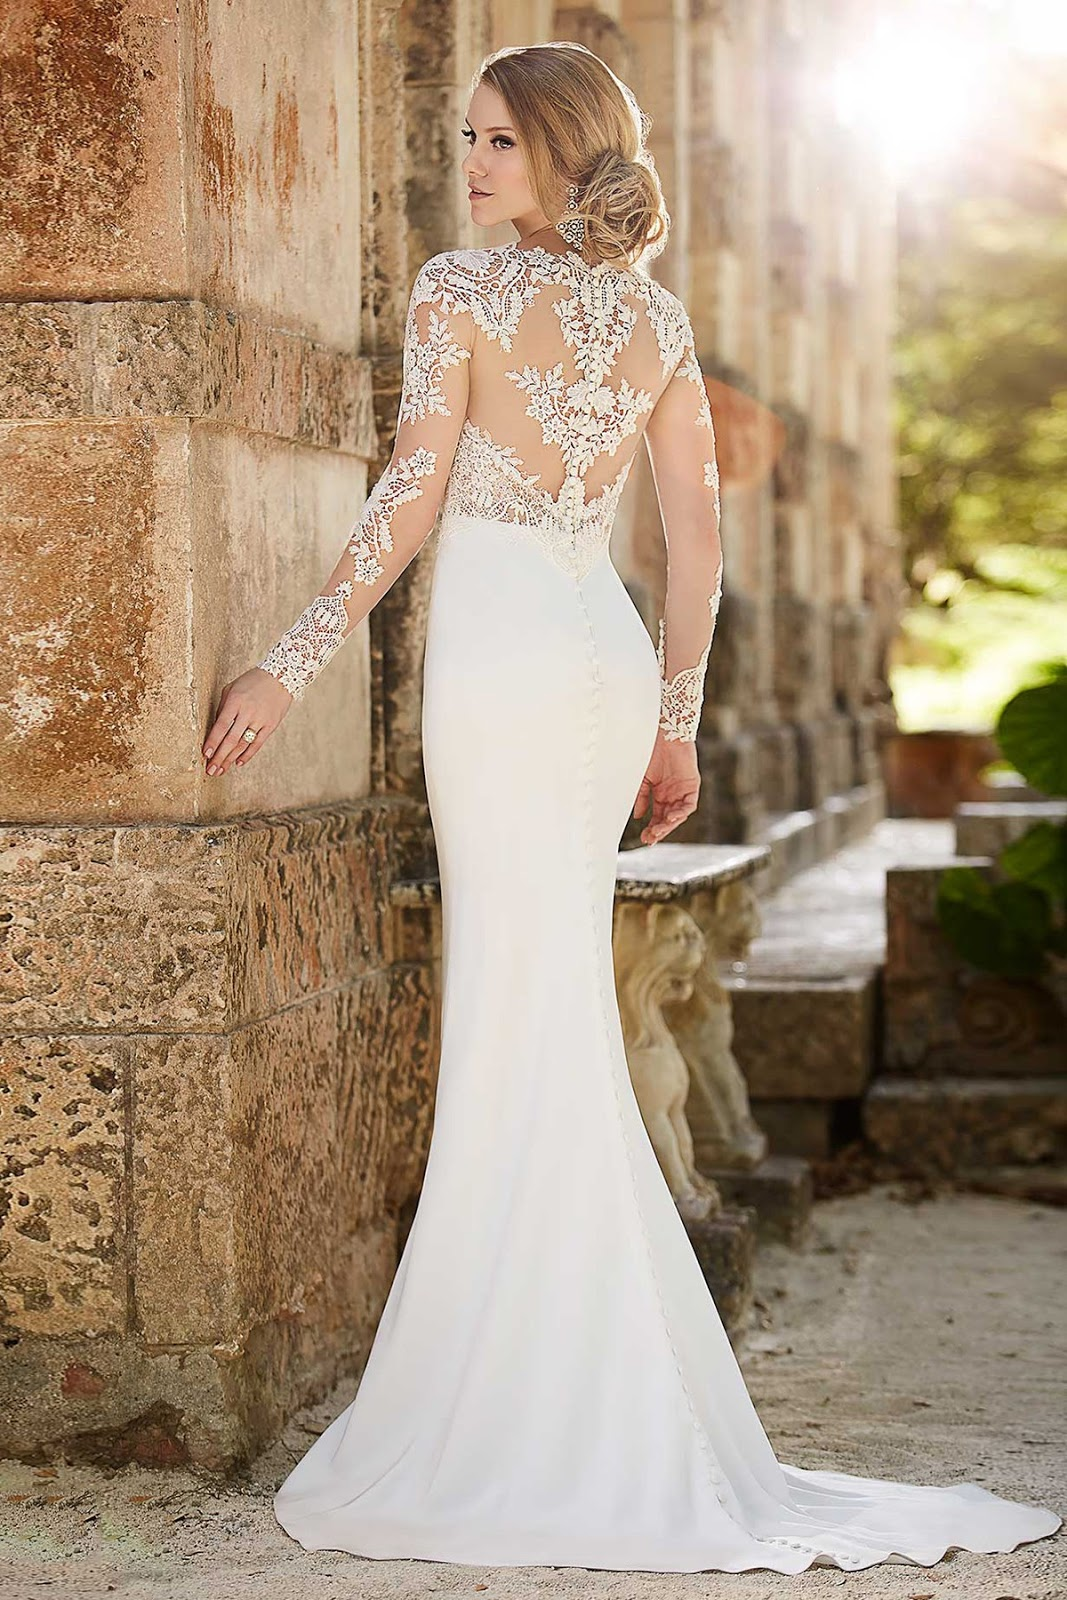 landybridal wedding dresses fitted lace wedding dress Landybridal Wedding Dresses